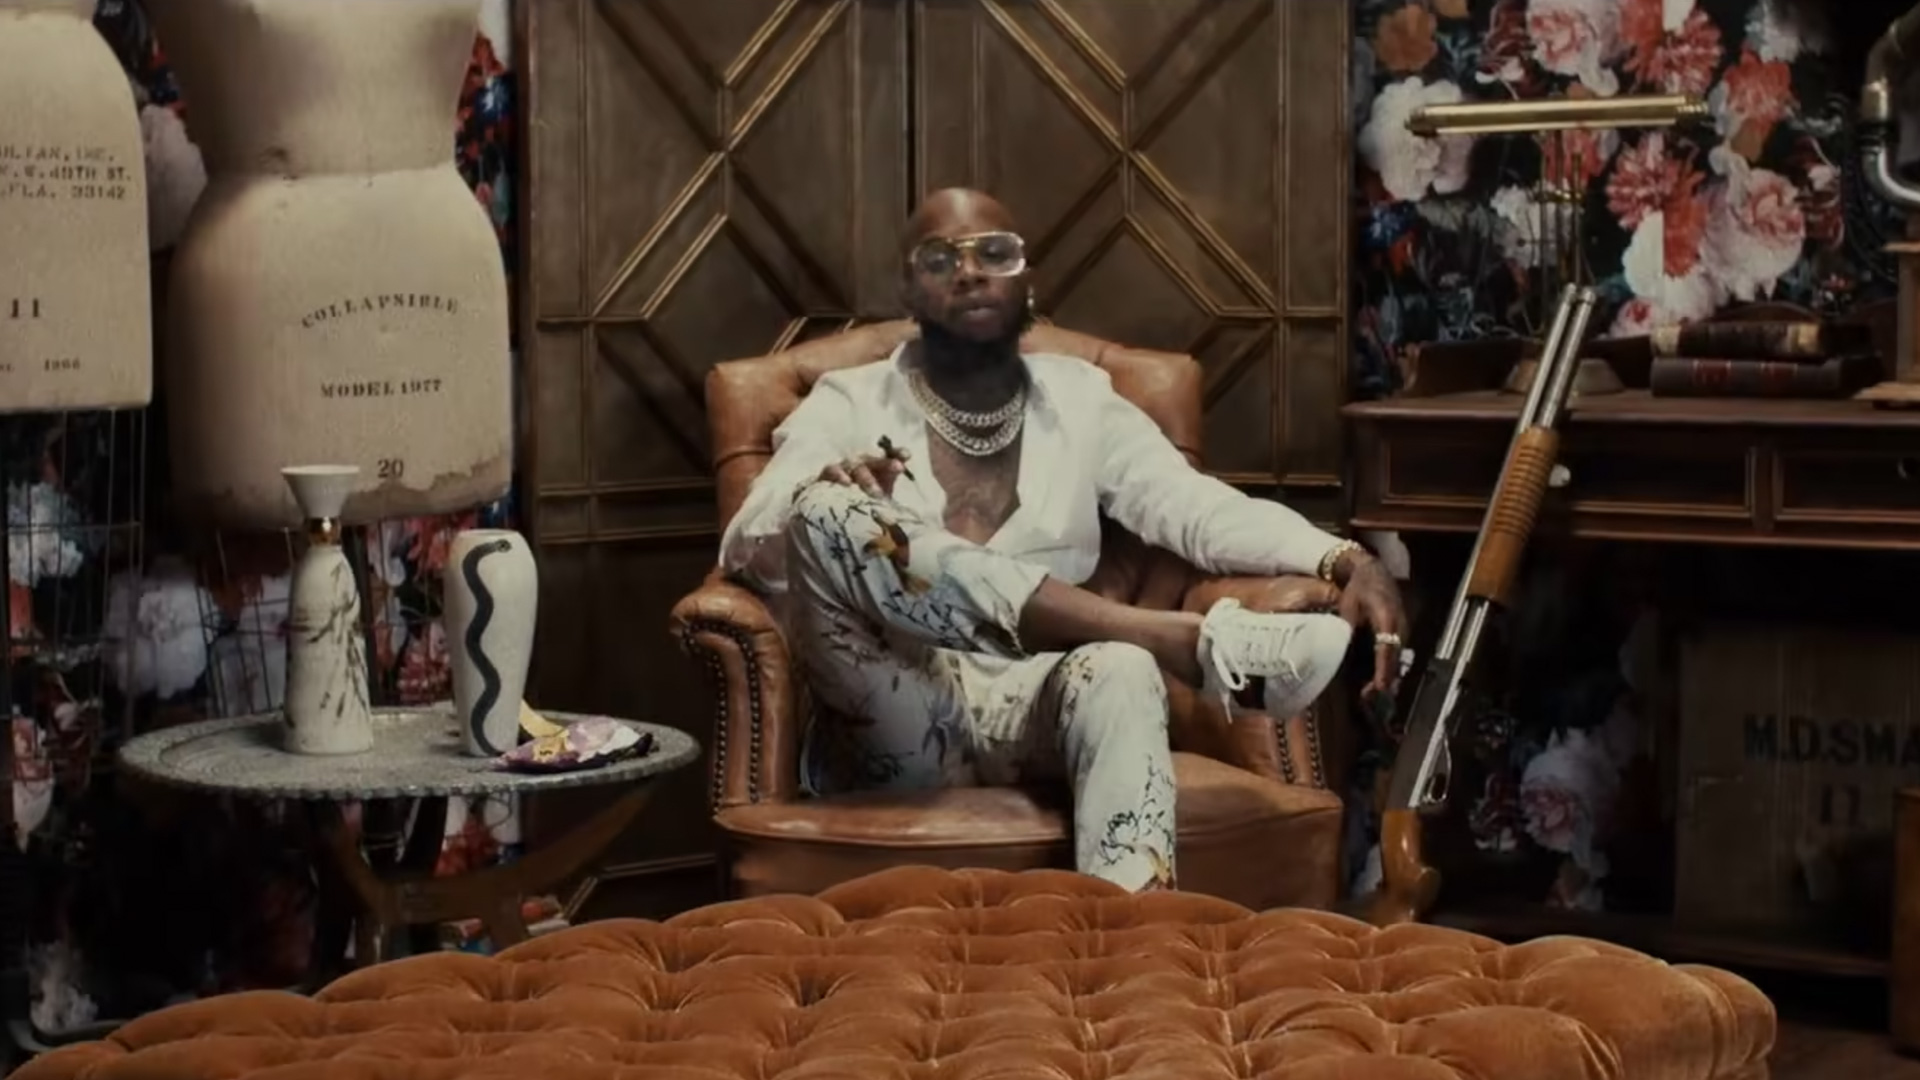 Man sitting on a leather chair next to fashion mannequins and a gun